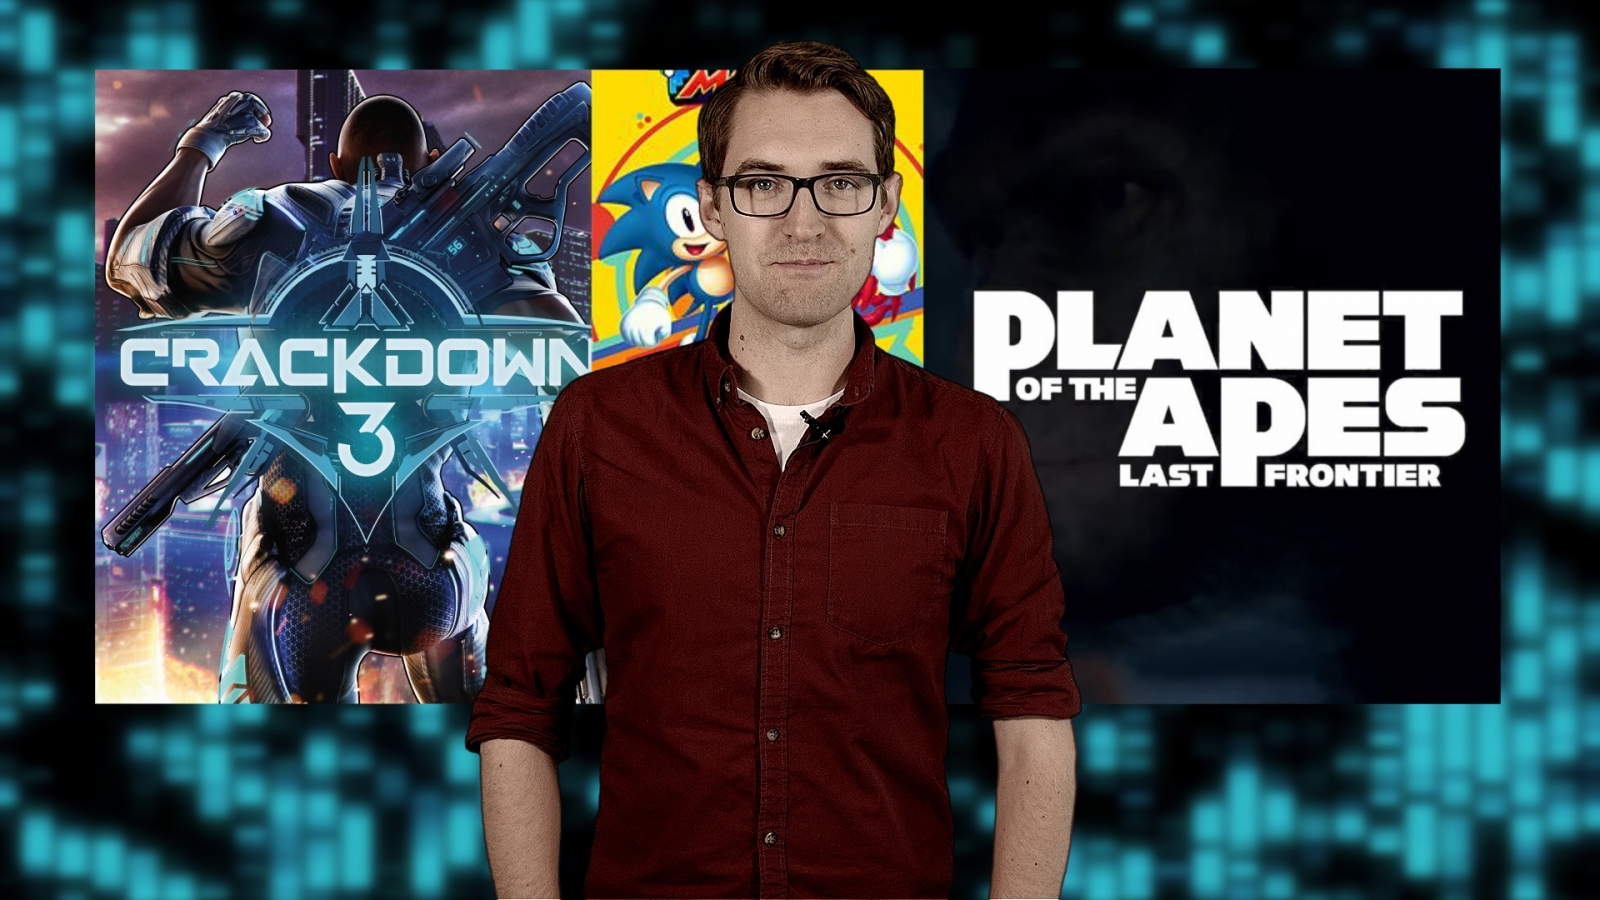 Video game news round-up: Crackdown 3 delayed